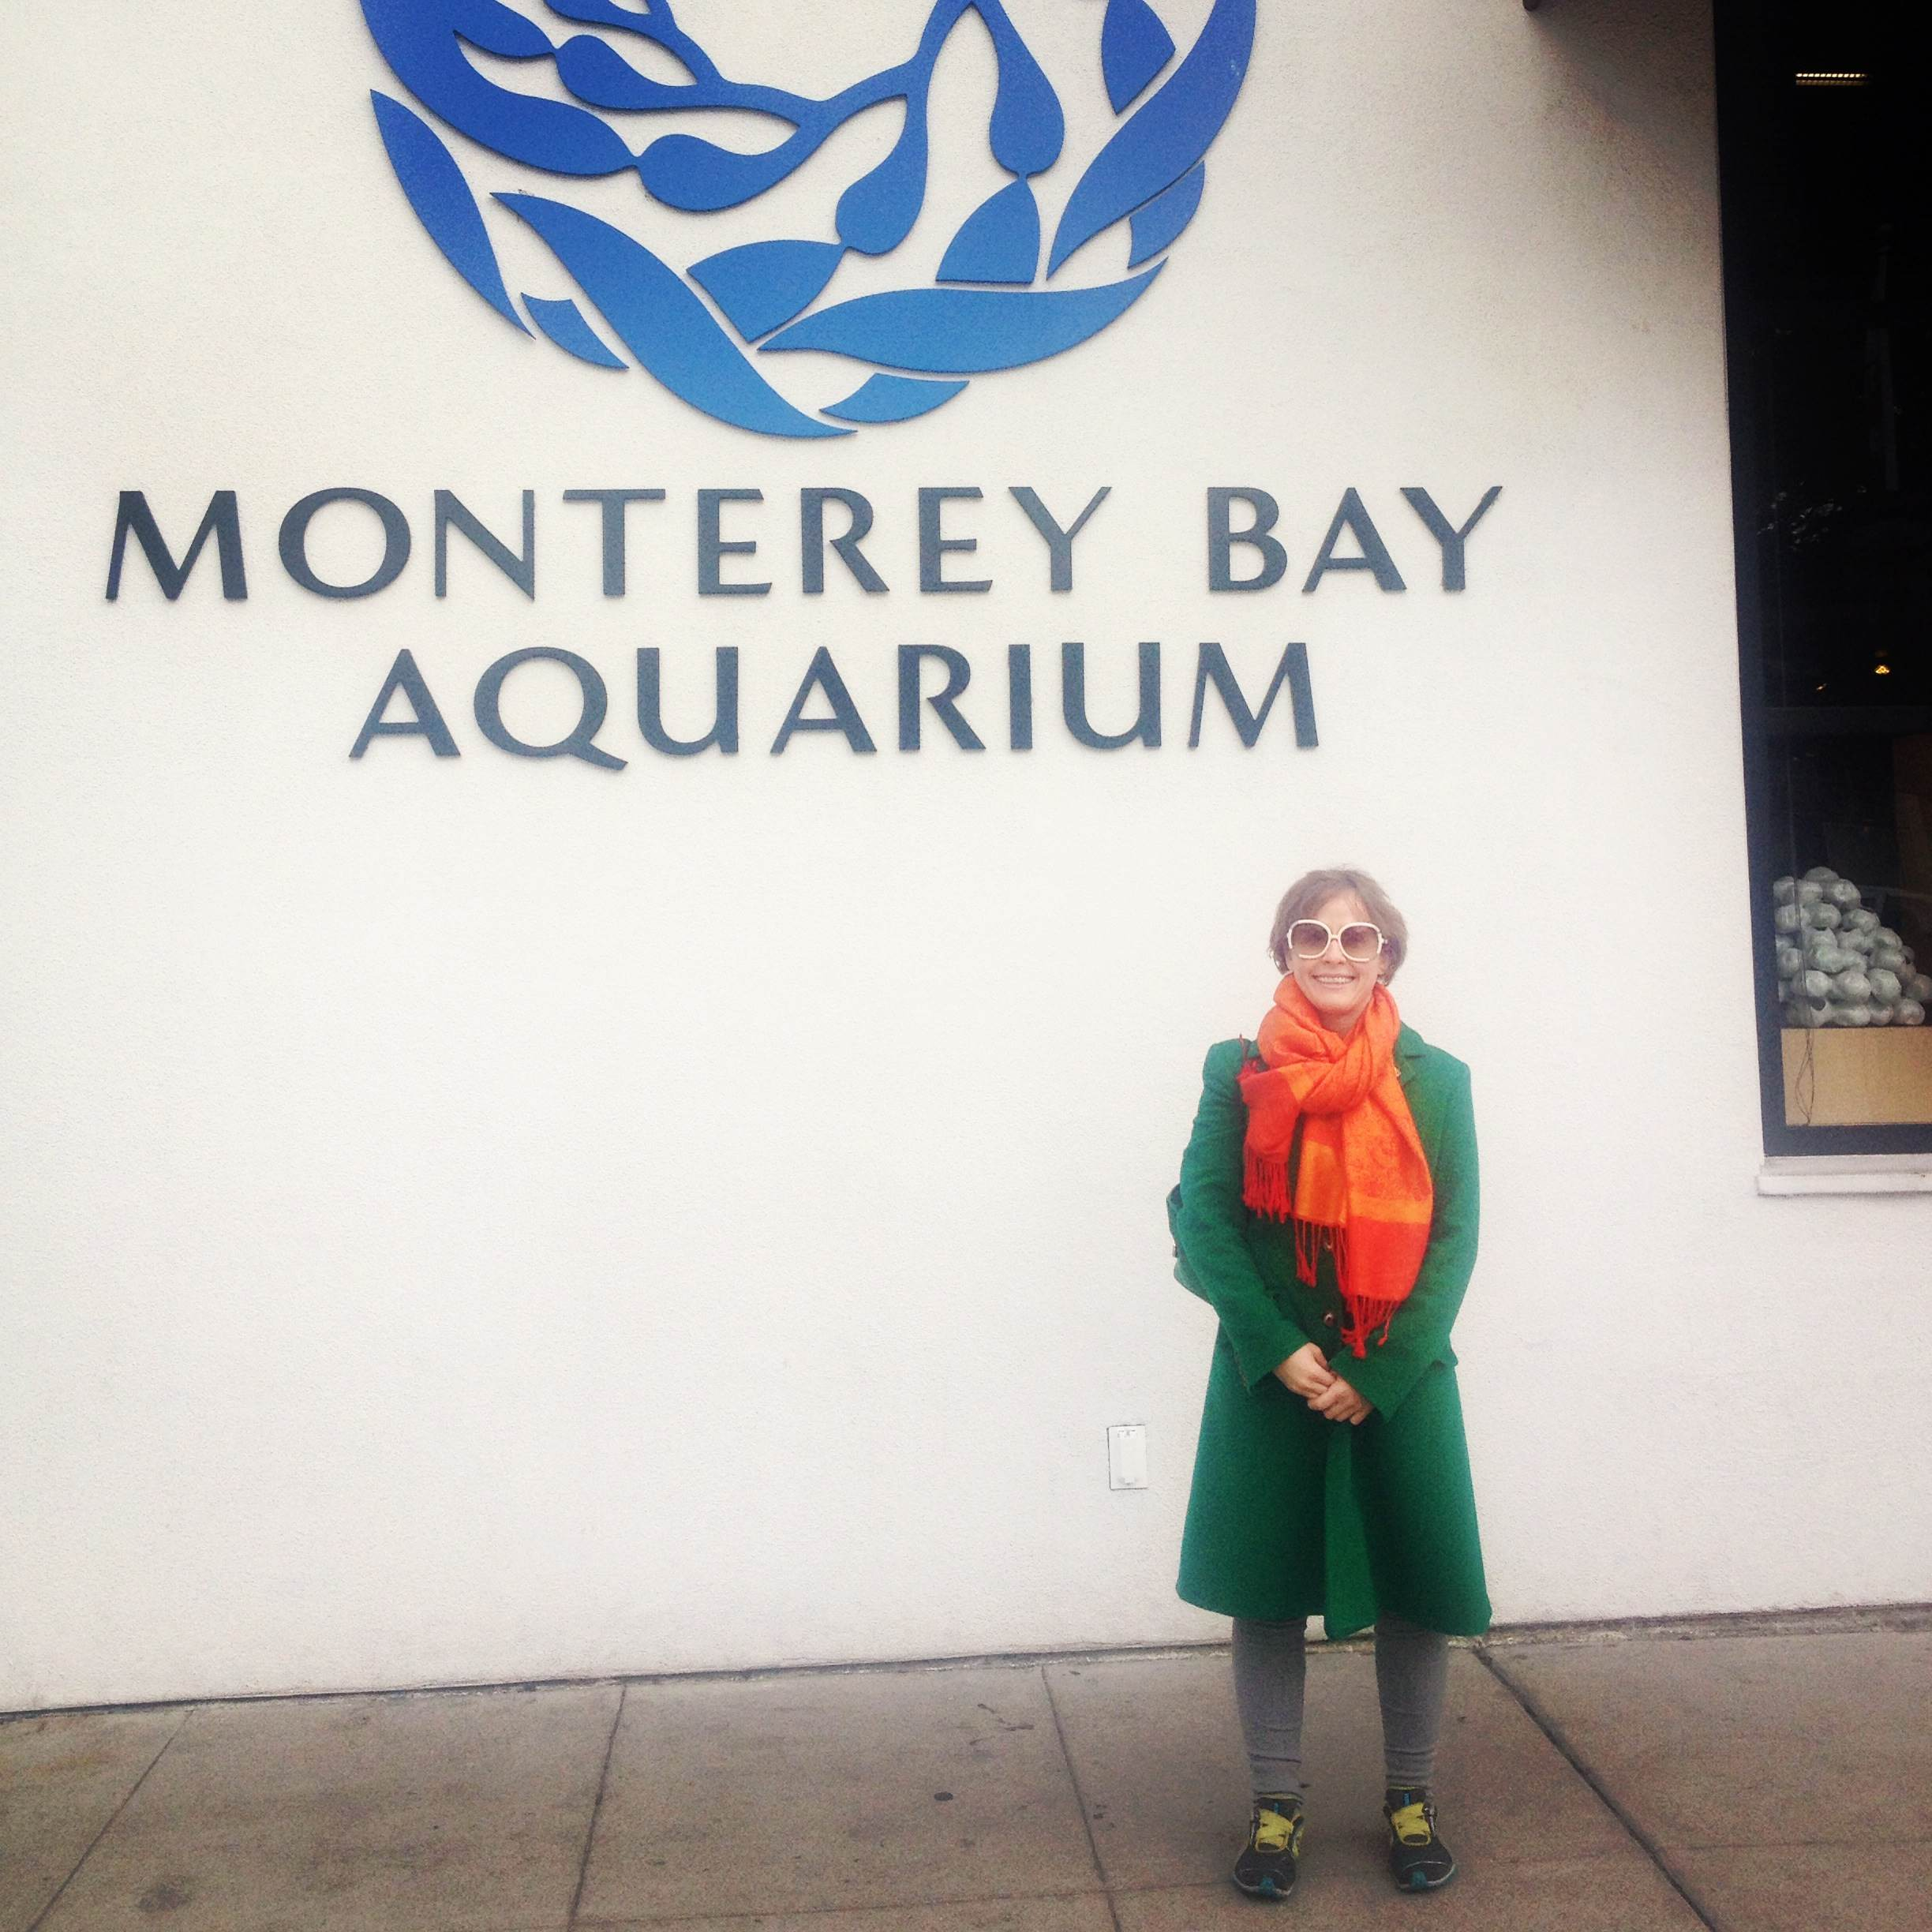 Happy to be at the Monterey Bay Aquarium